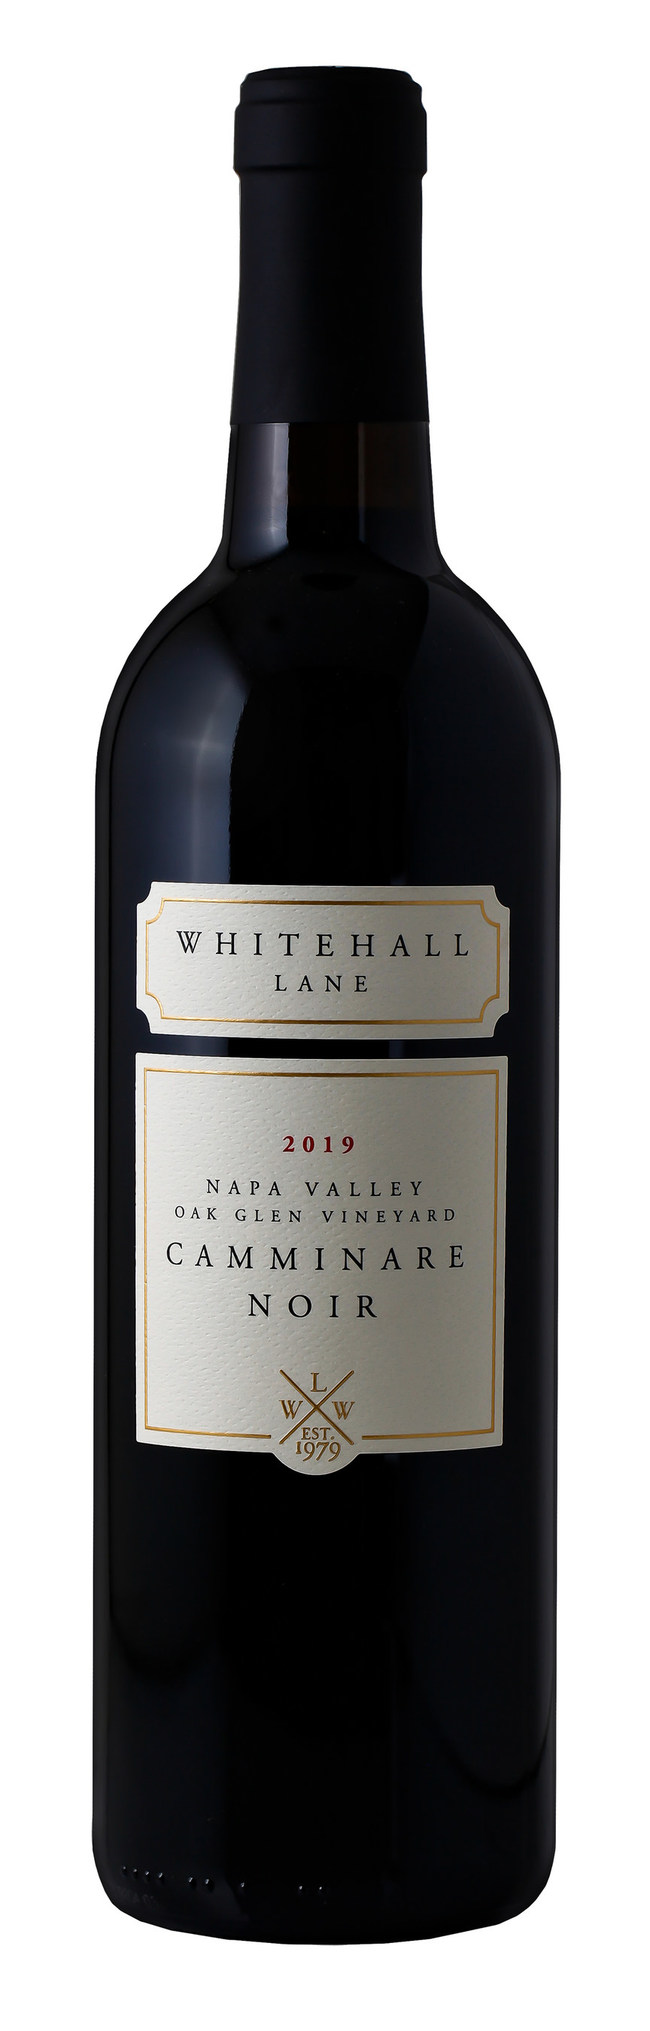 Whitehall Lane 2019 Camminare Noir, Napa Valley